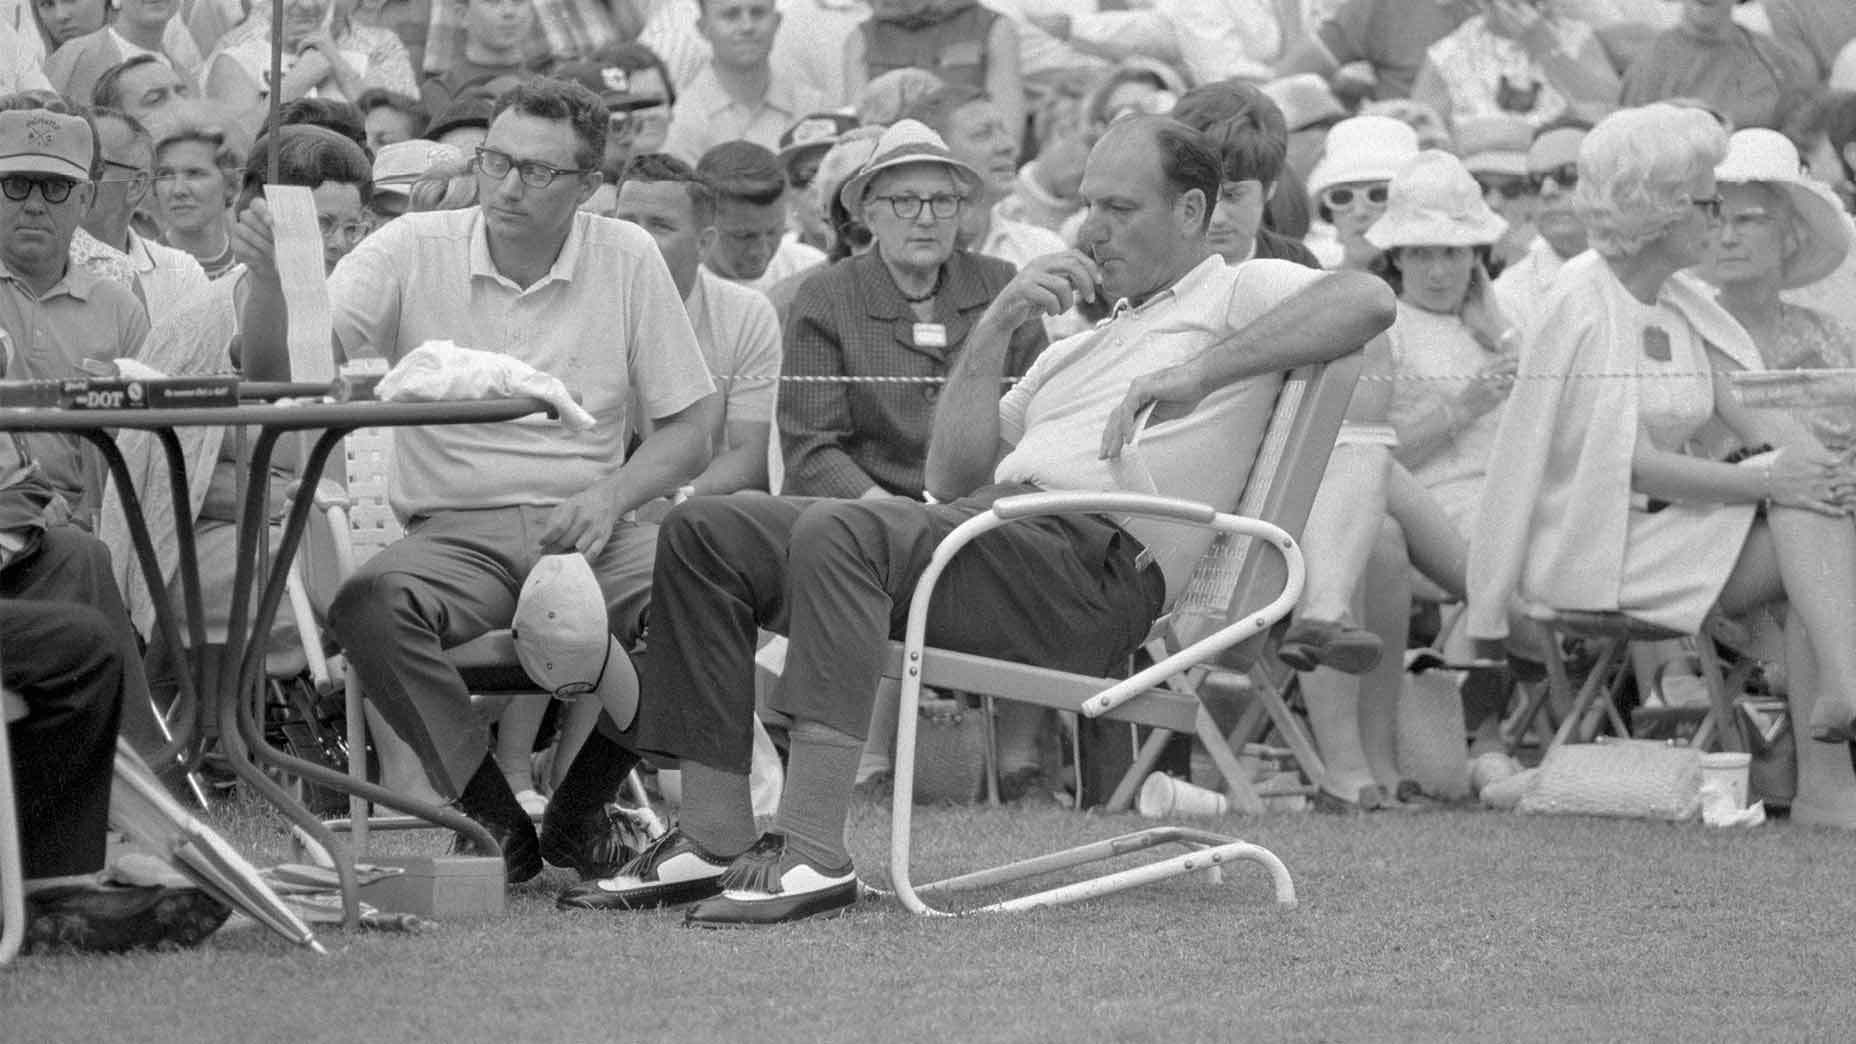 A stunned Roberto De Vicenzo after he signed an incorrect scorecard at the 1968 Masters.